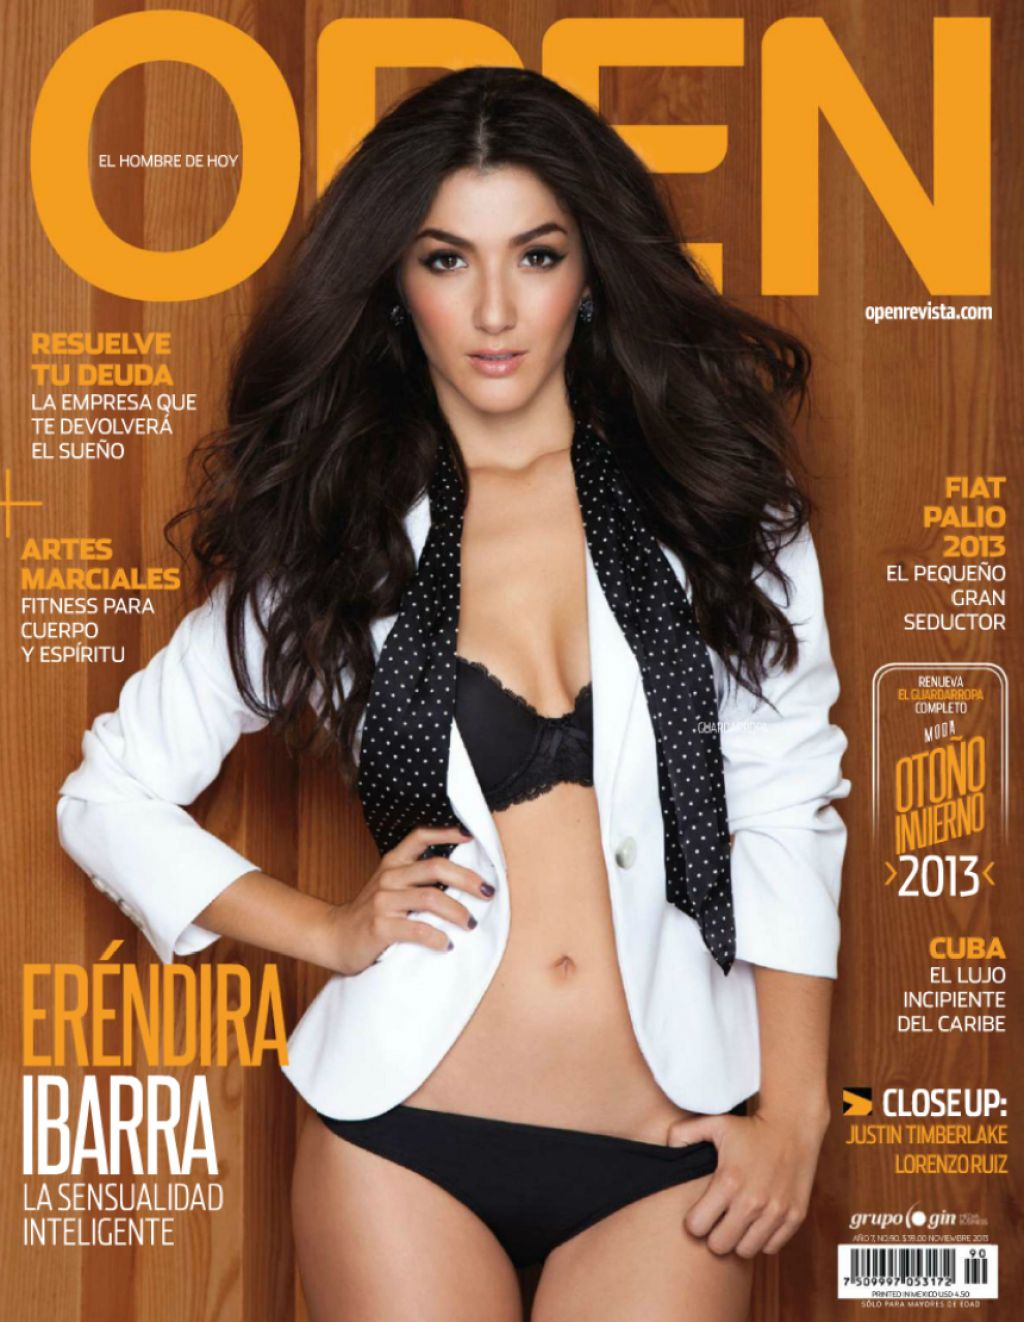 Erendira Ibarra - OPEN Magazine (Mexico) - November 2013 Issue